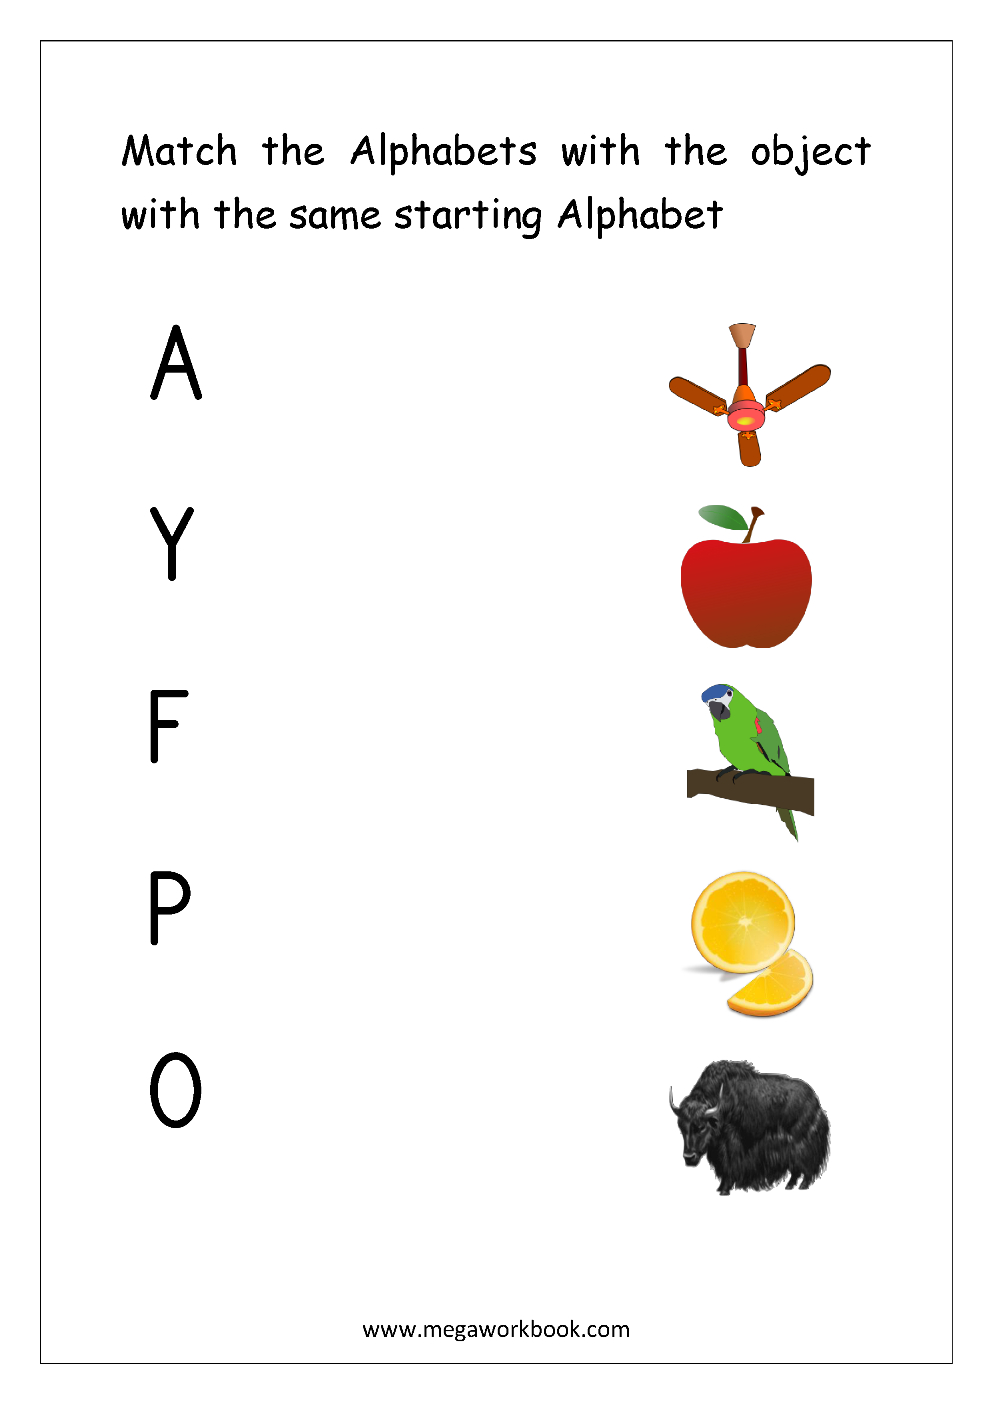 Letter Matching Worksheet - Match Object With The Starting within Alphabet Matching Worksheets Printable